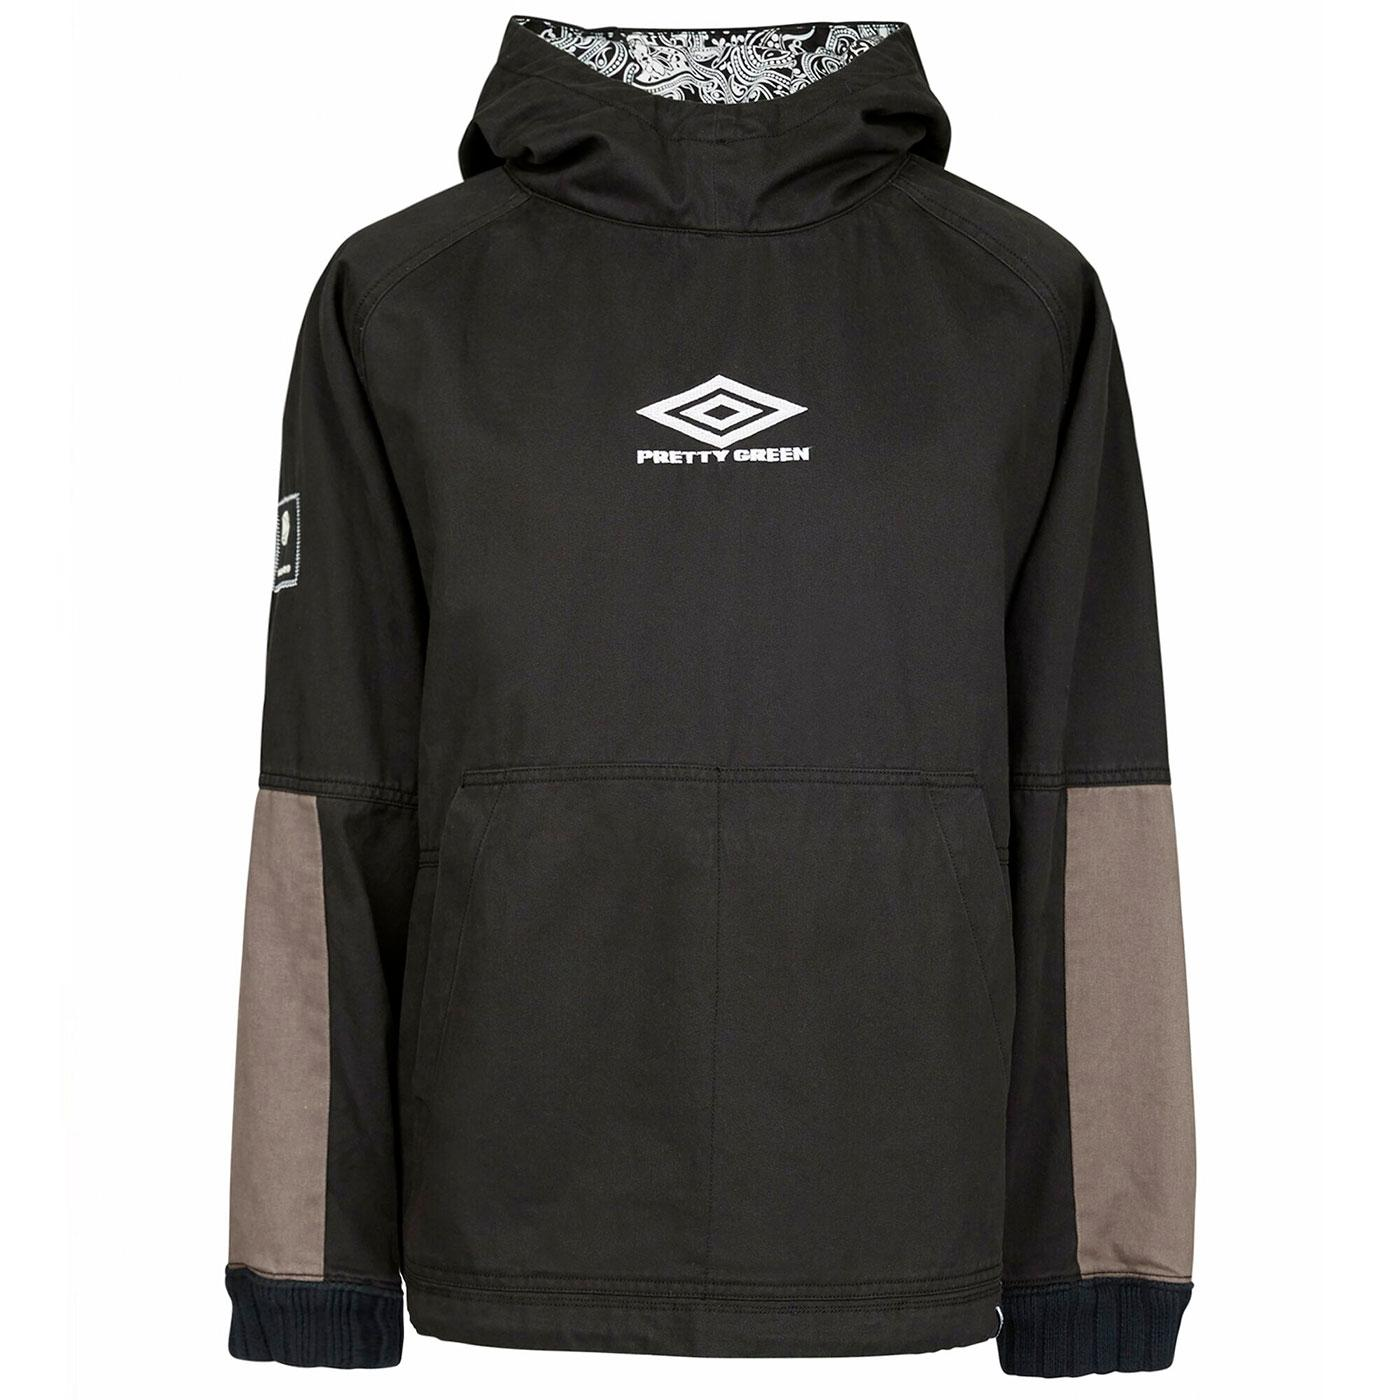 PRETTY GREEN X UMBRO Overhead Hooded Drill Top